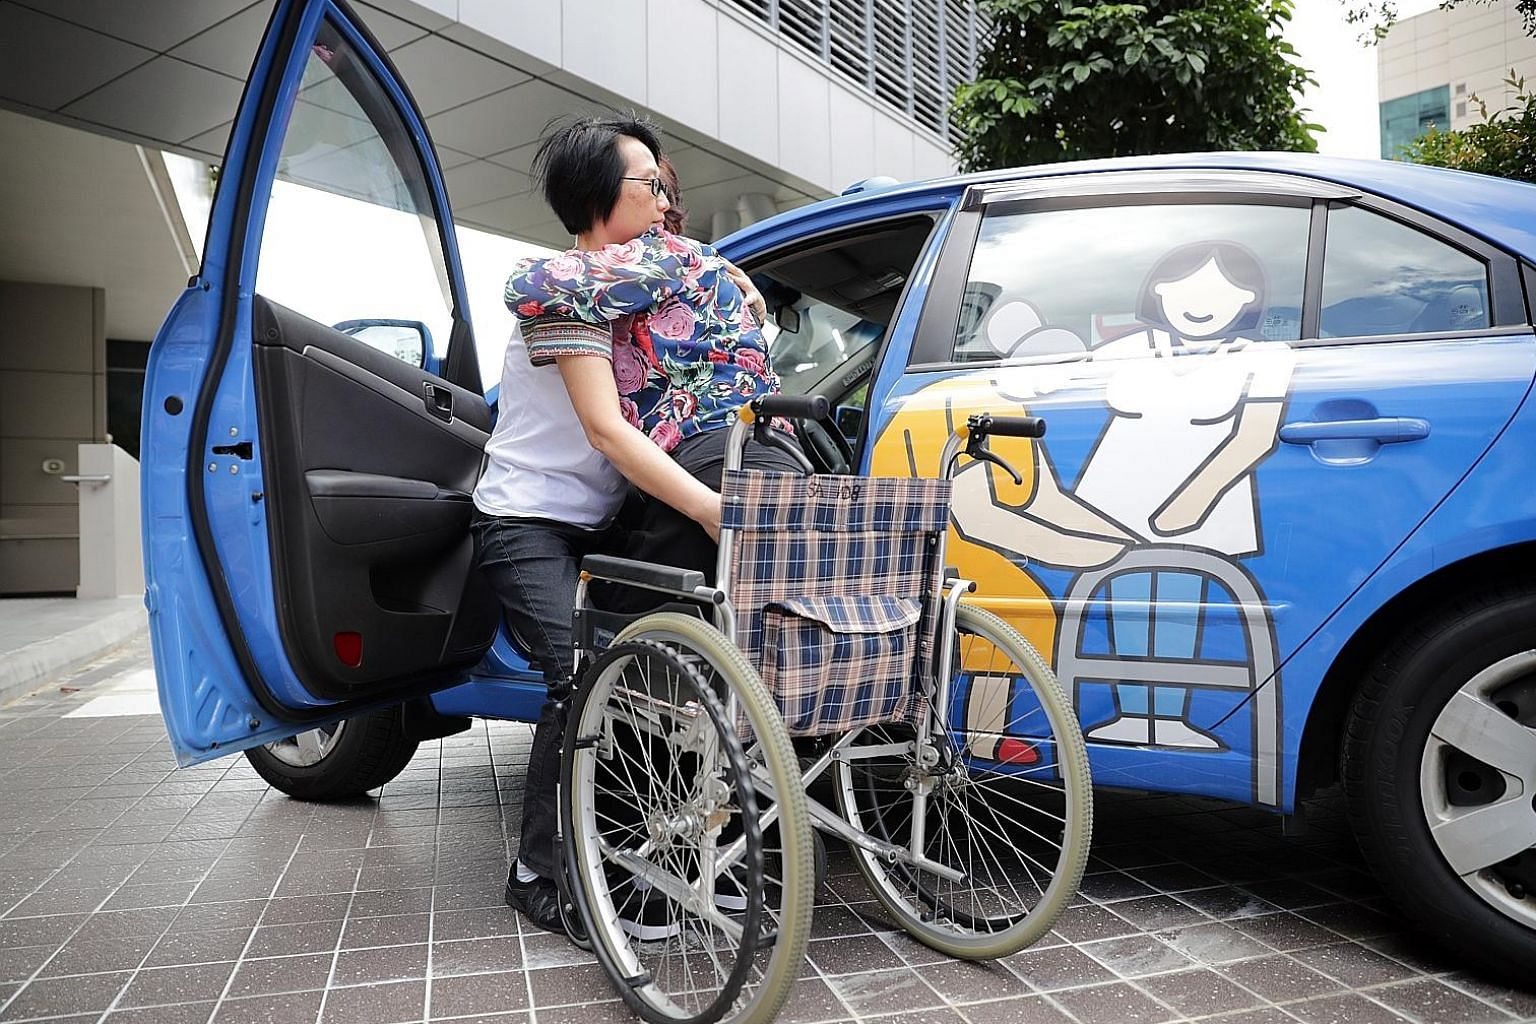 TTSH senior therapy assistants Poh Kuat Hong (left) and Cindy Quek demonstrating the car transfer training with a decommissioned ComfortDelGro taxi. For caregivers, it involves learning the proper technique of positioning and then lifting or helping